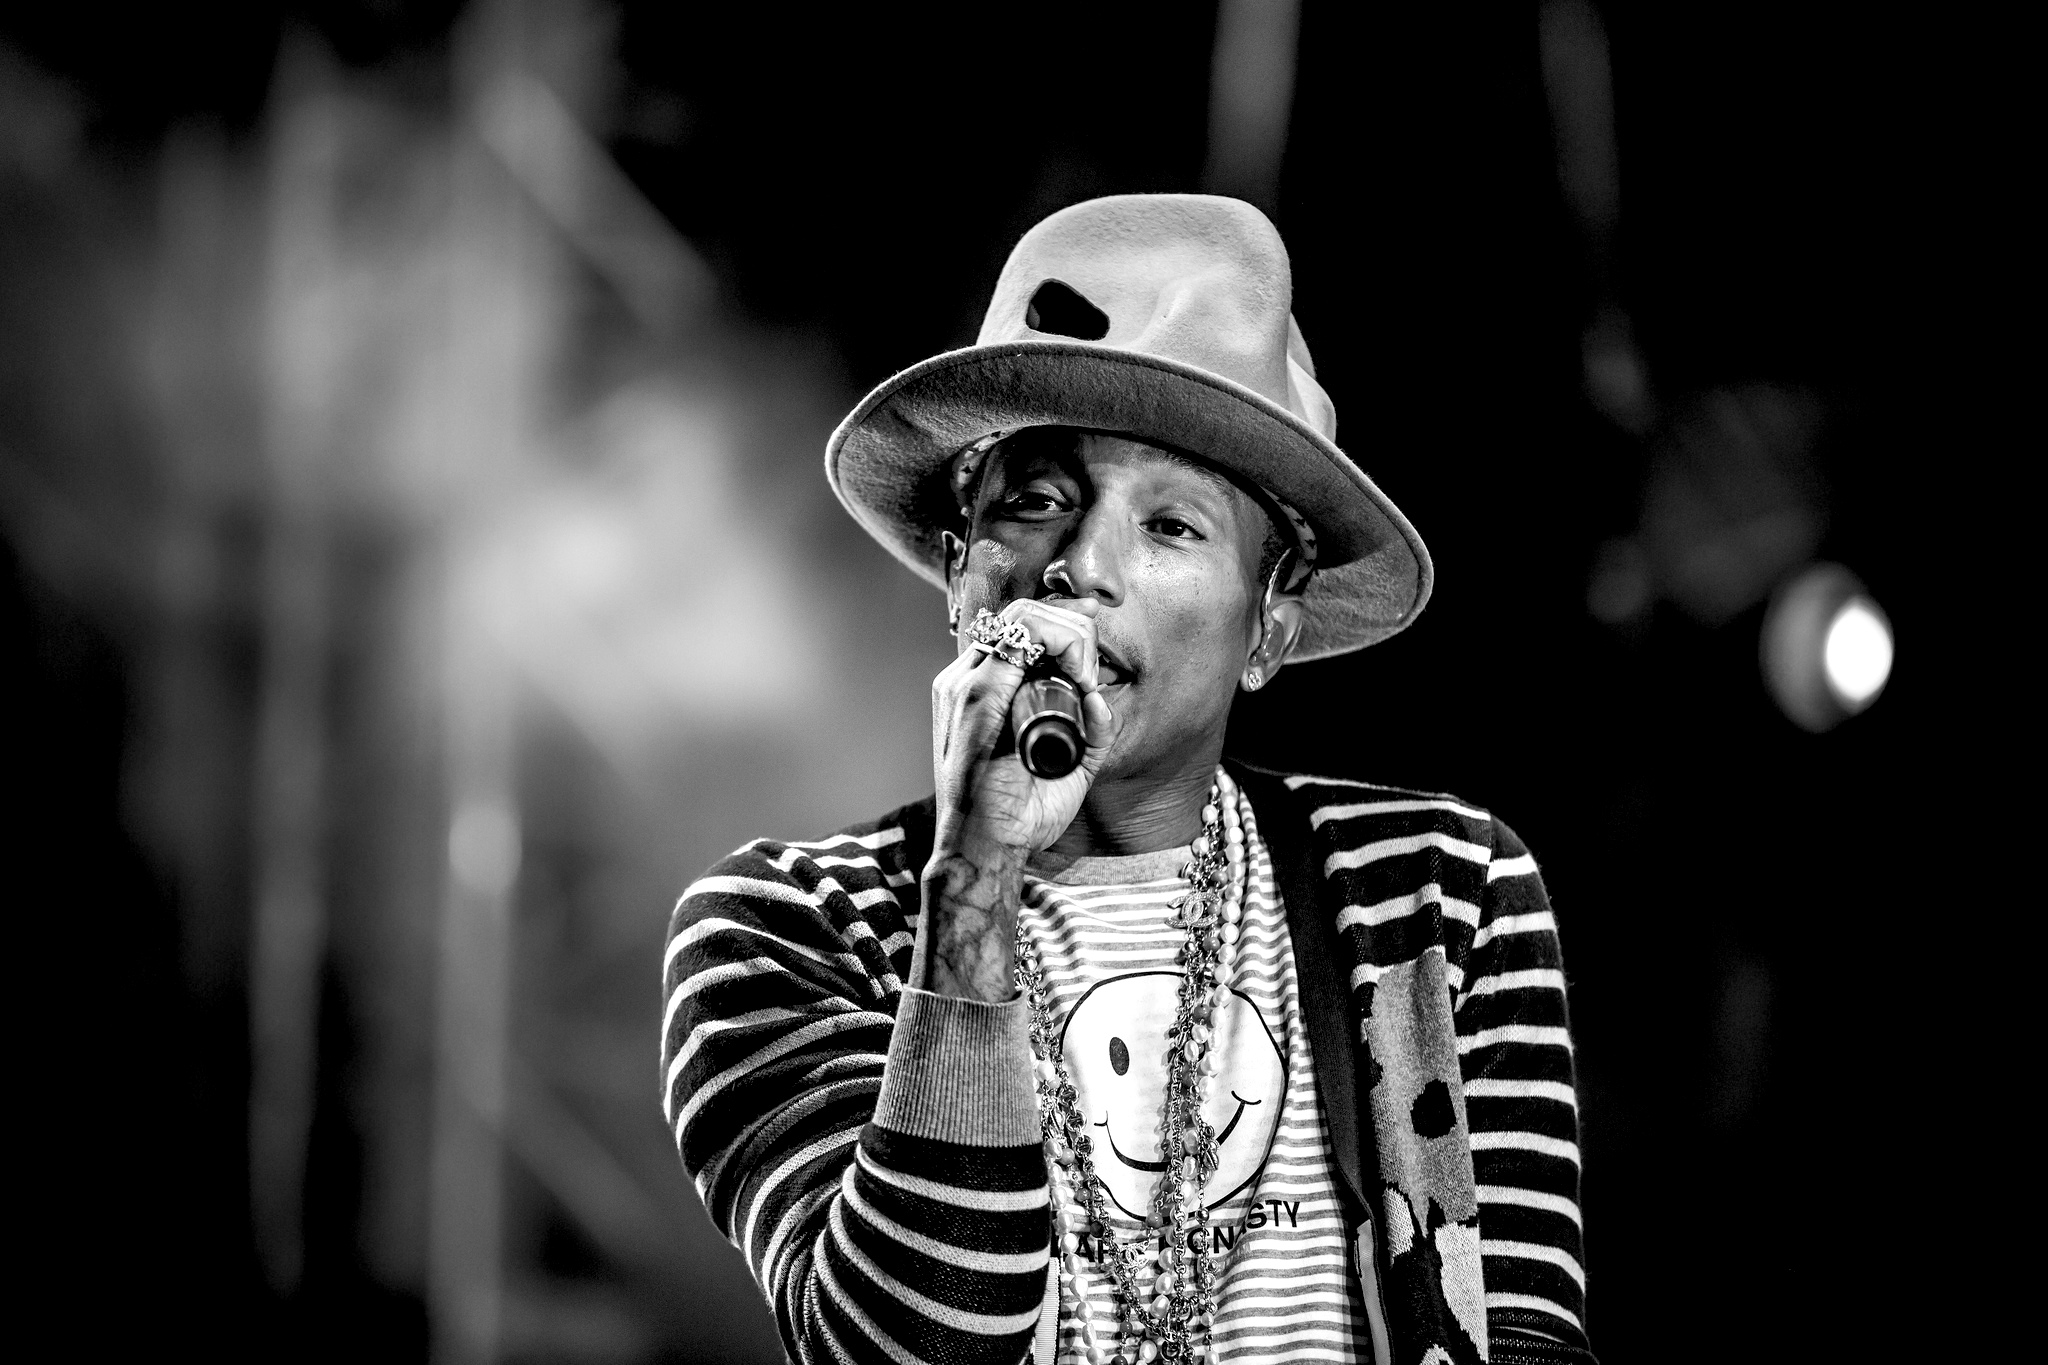 Foto: Thomas Hawk, Coachella 2014